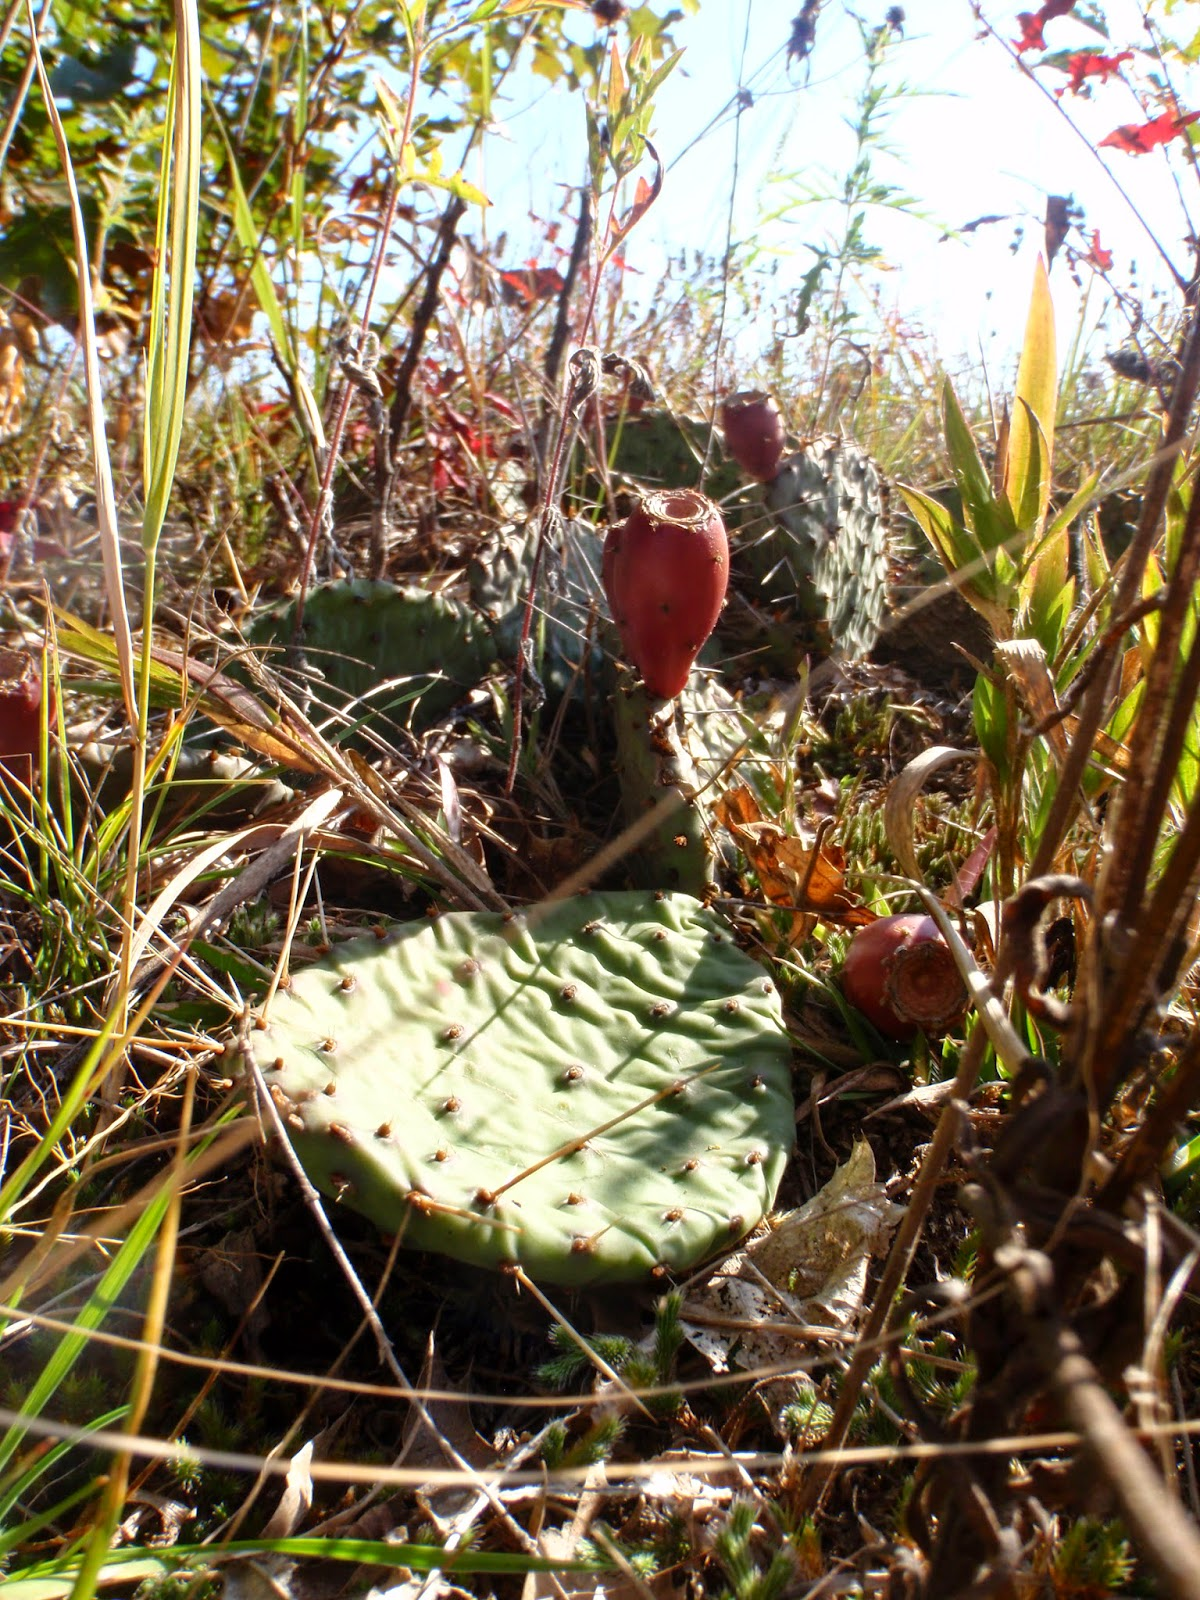 Prickly Pear Cactus at Spring Green Preserve